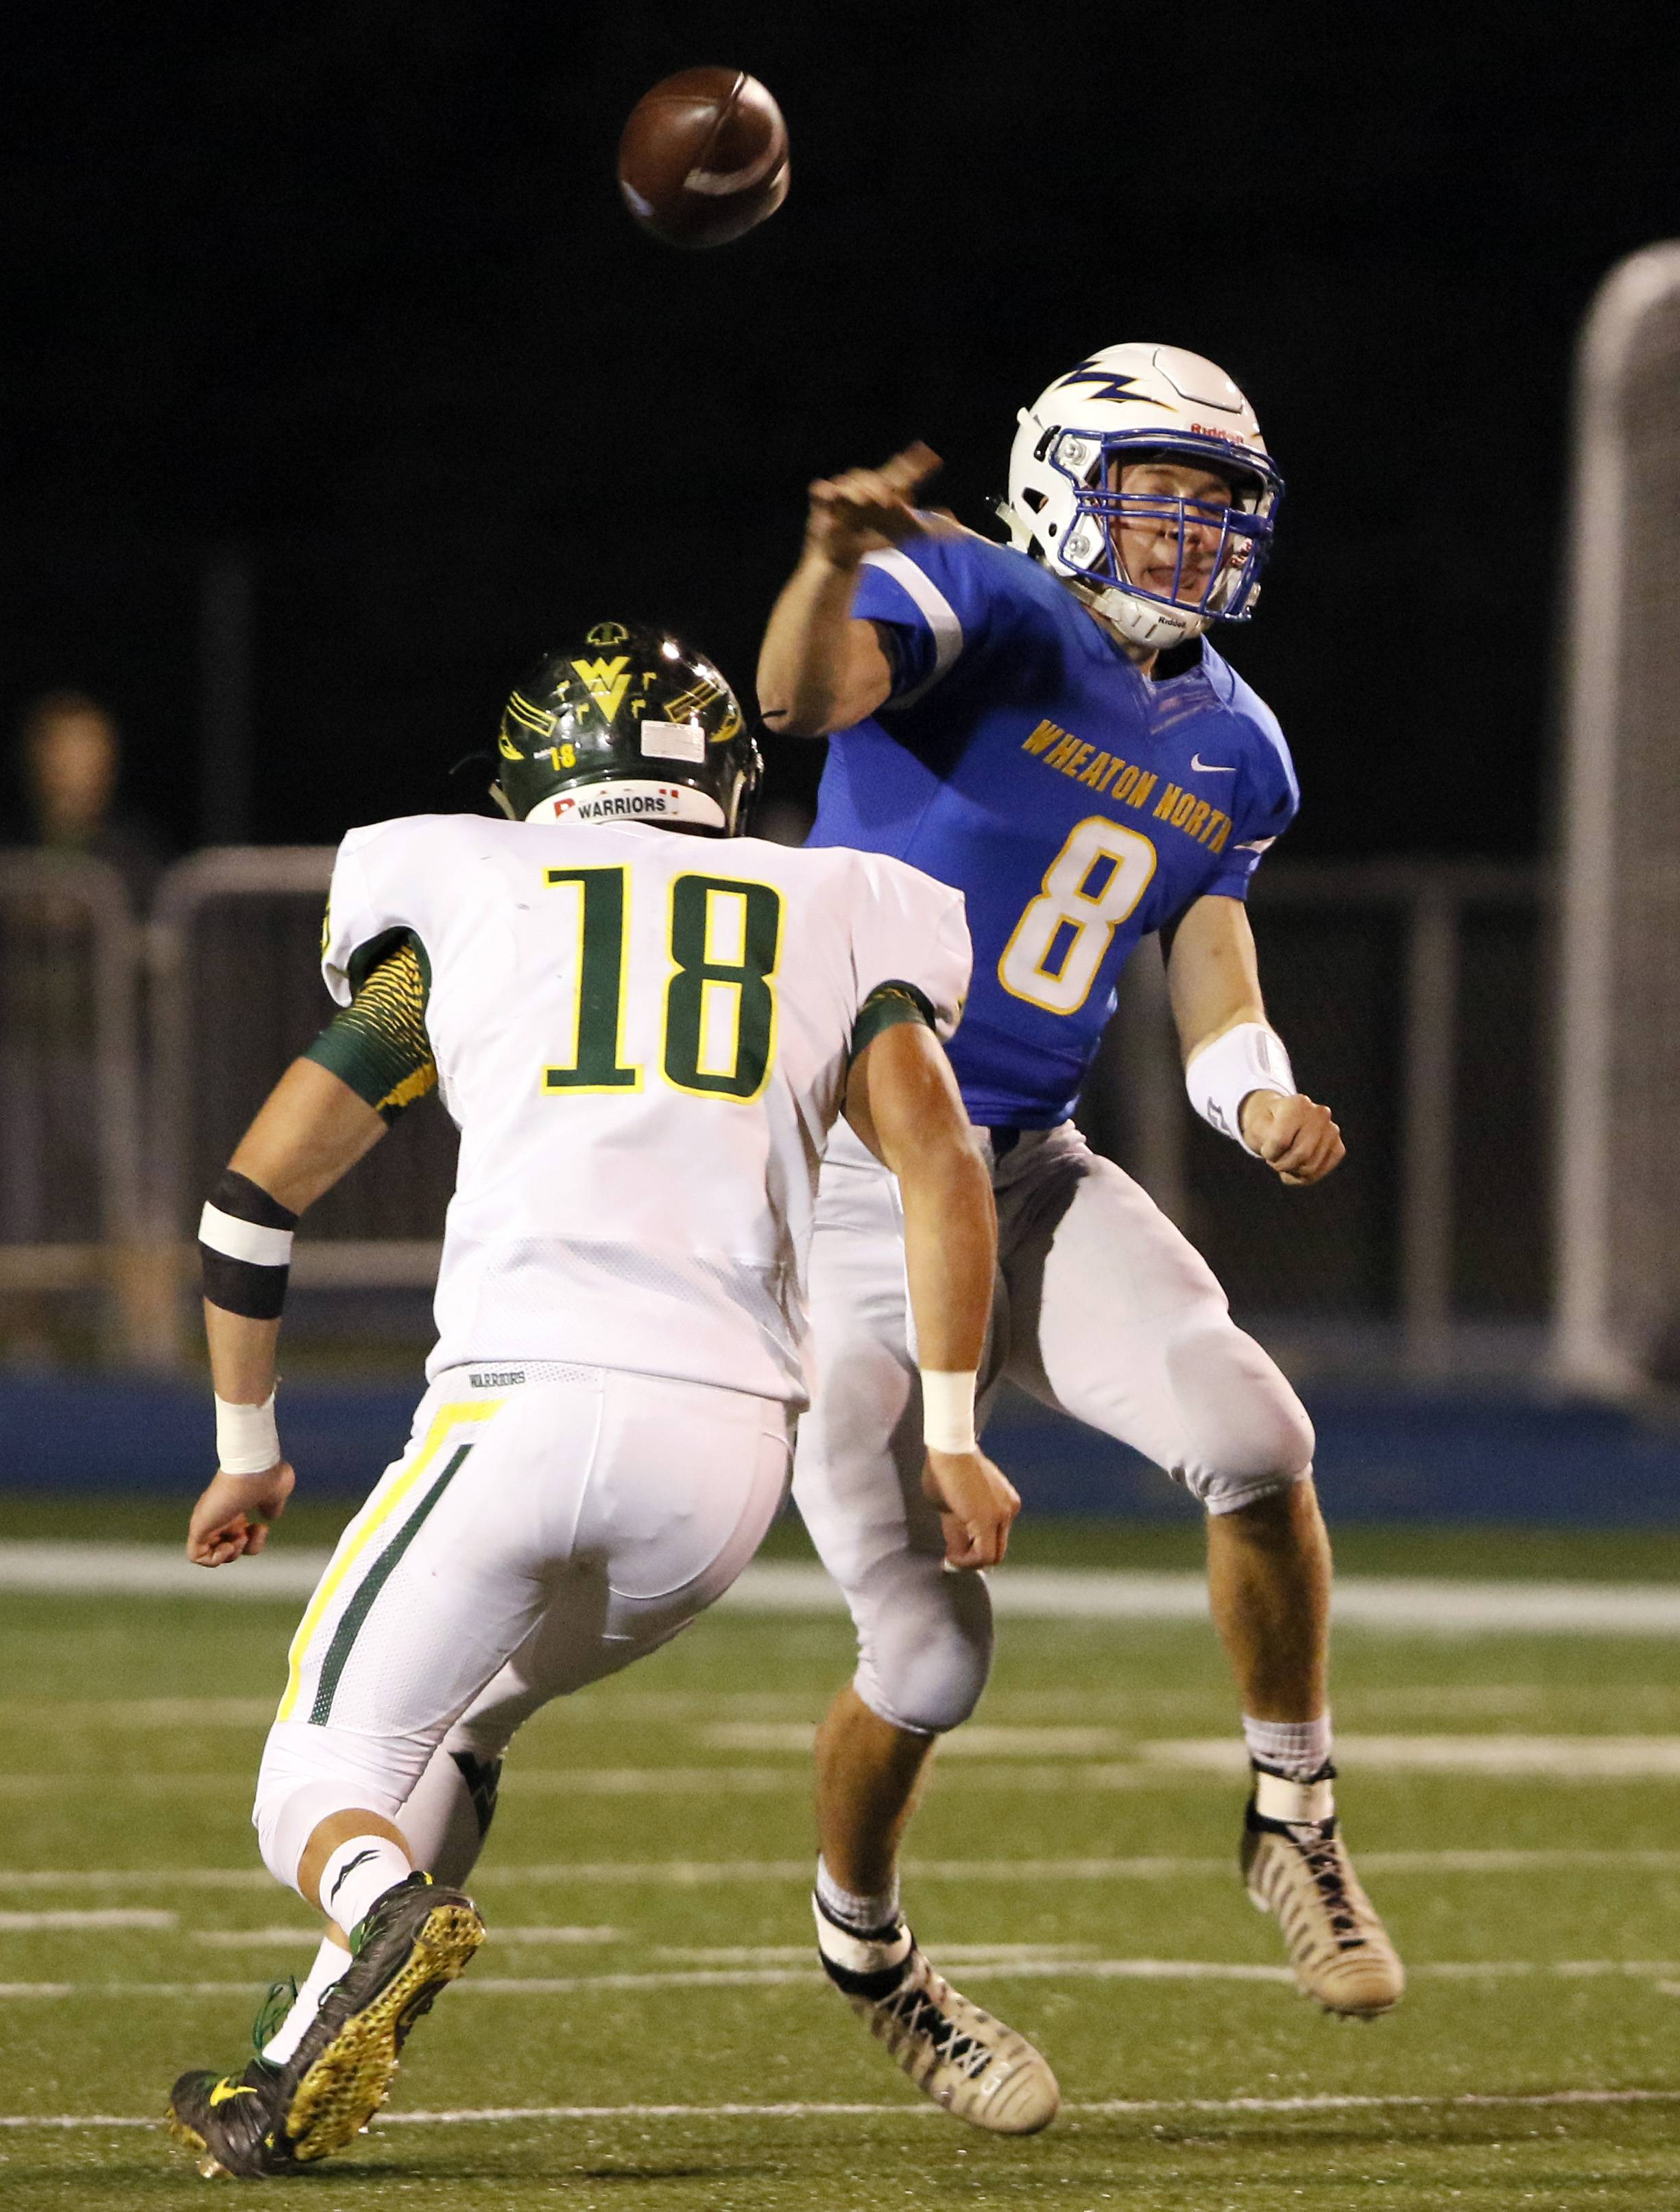 Wheaton North quarterback Rhett Netzer (8) fires a pass around Waubonsie Valley's Eric France (18) during football action in Wheaton.